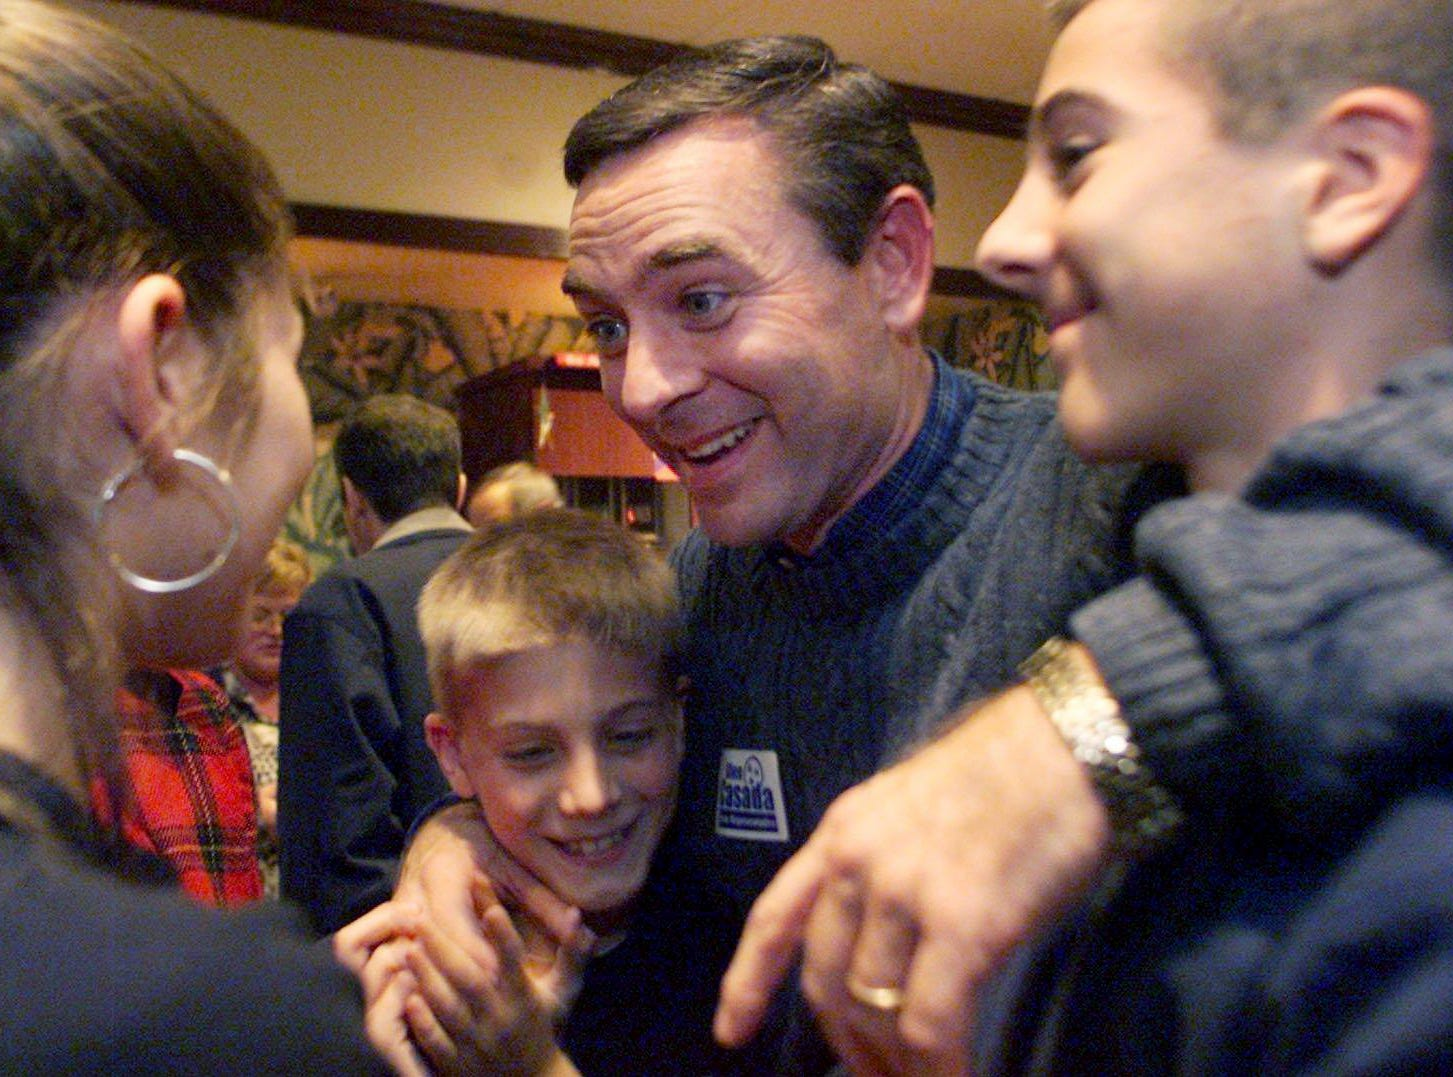 Glen Casada celebrates with his kids Emmaleigh, 12, Clark, 10, and Rich, 14, after winning the 63rd District seat in the state House of Representatives on Dec. 12, 2001.